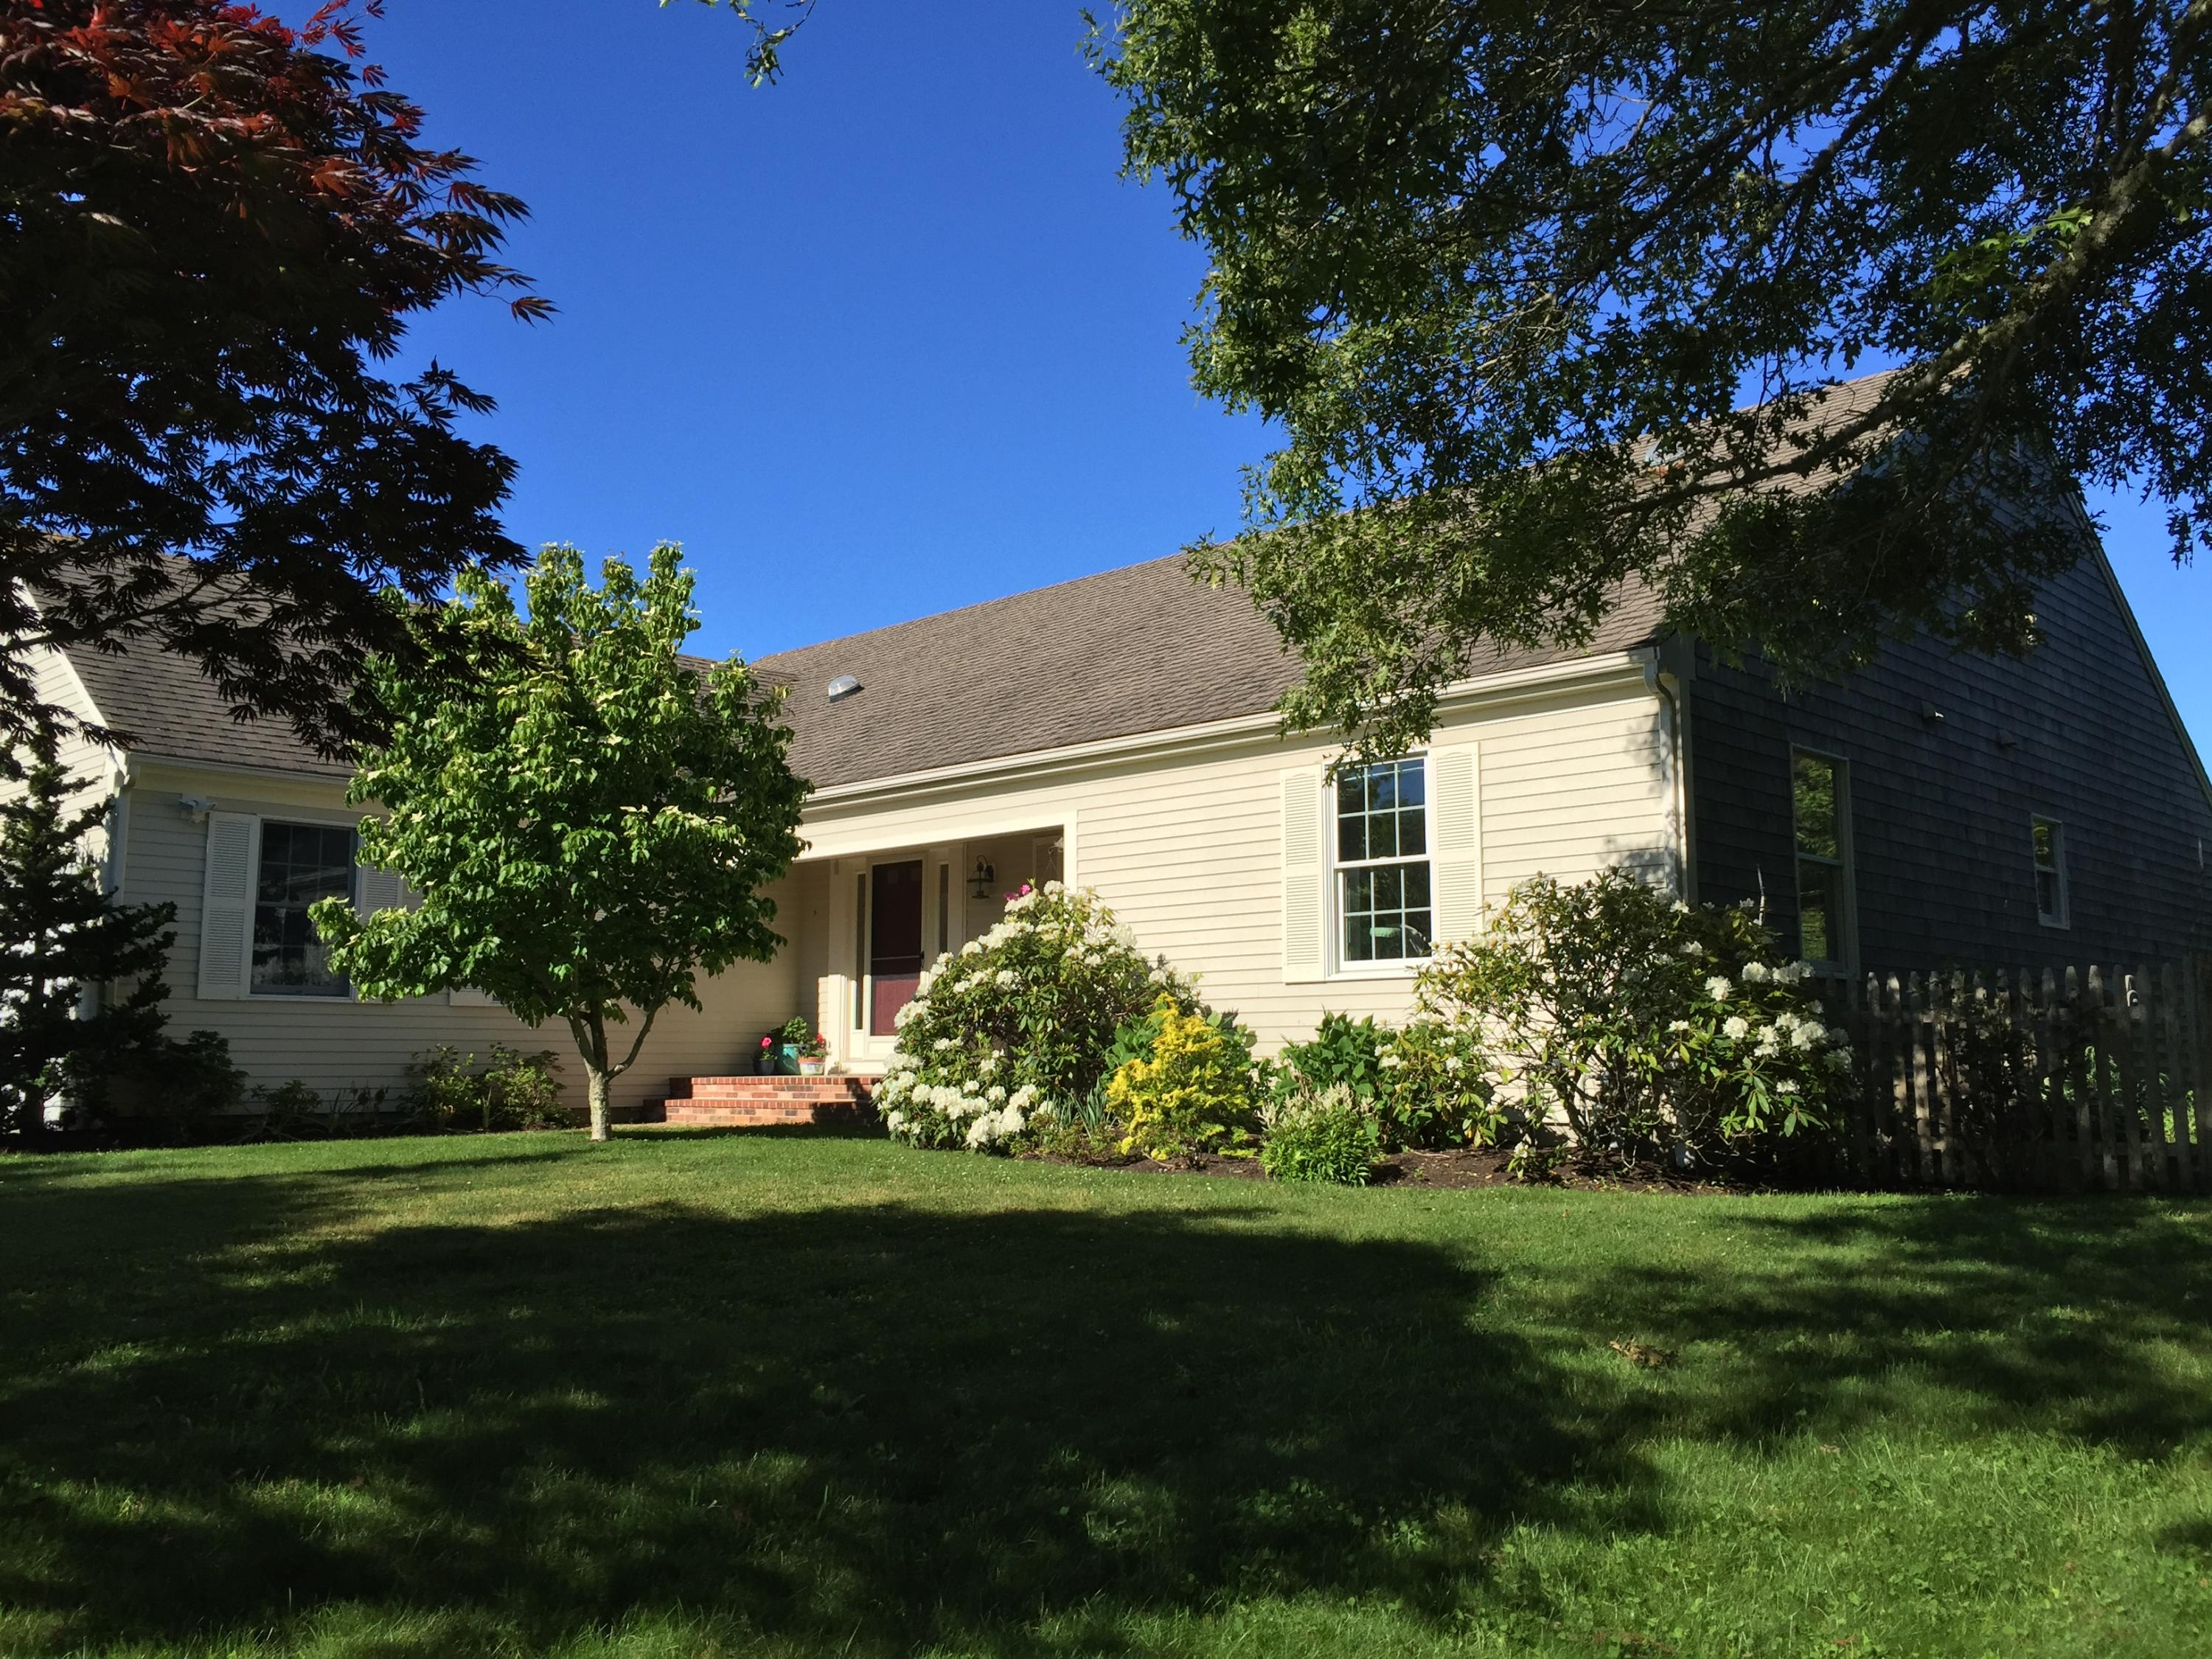 52 Lime Hill Road, Chatham MA, 02633 sales details